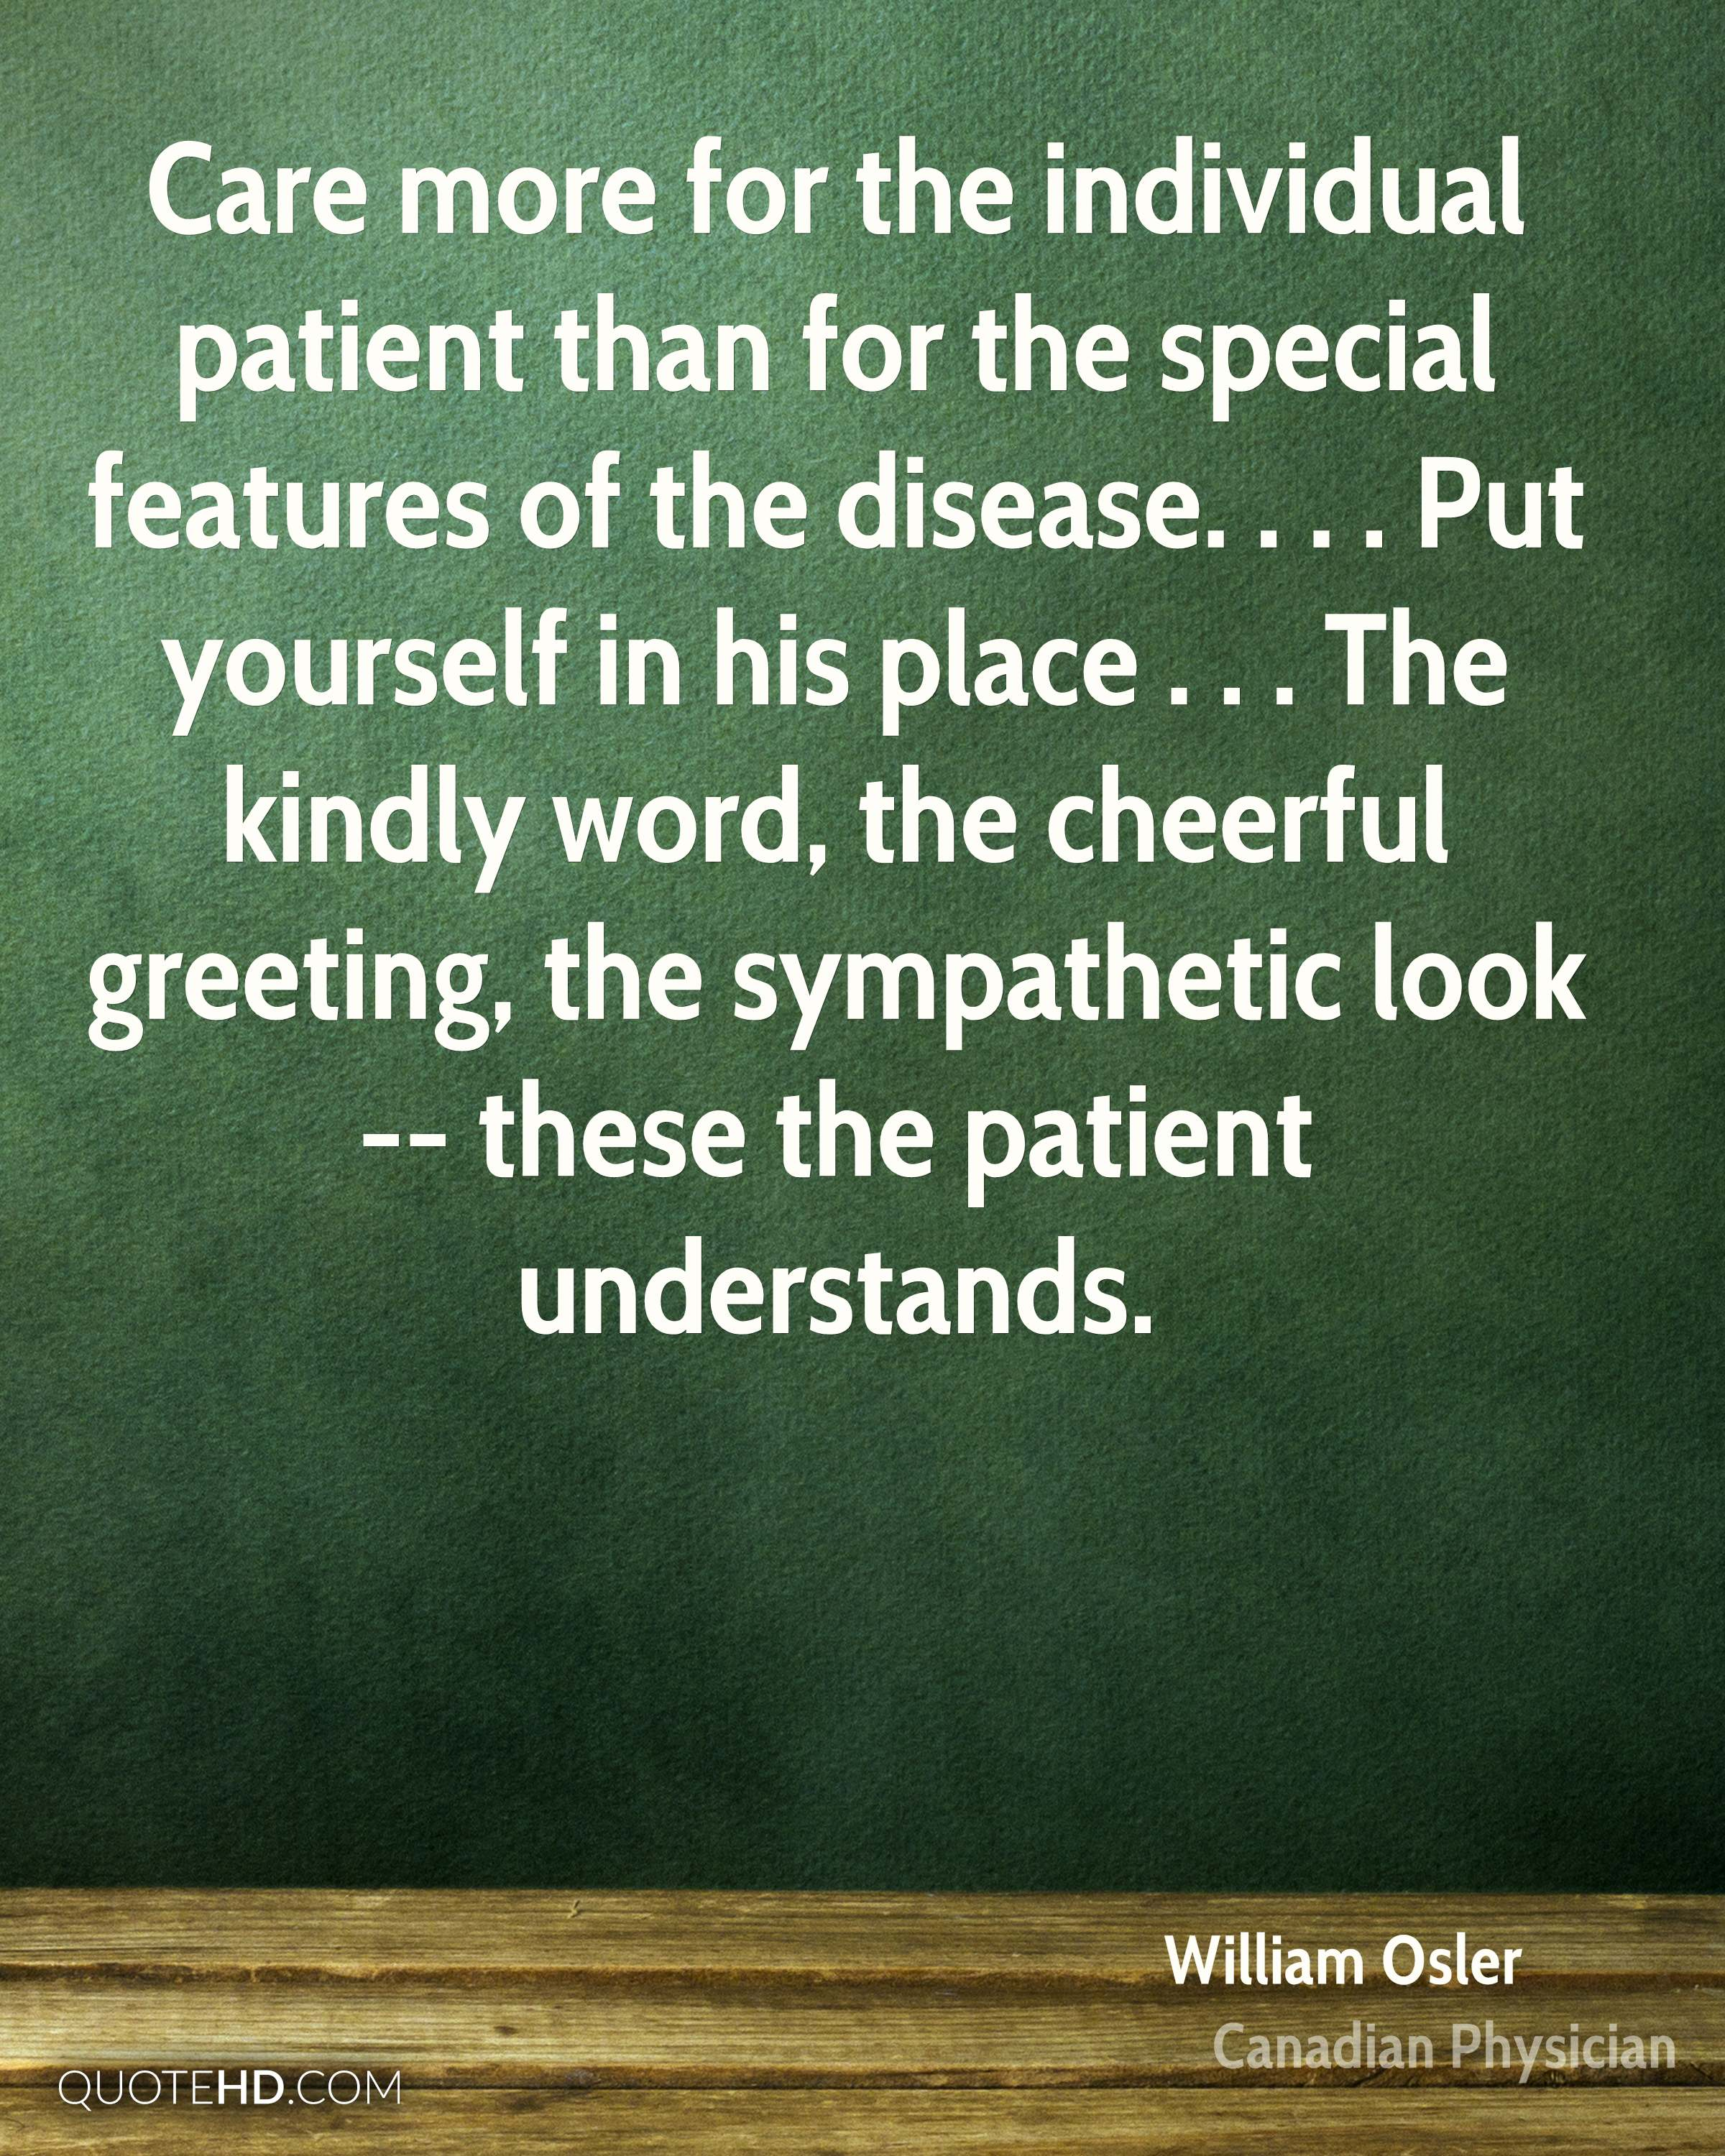 Care more for the individual patient than for the special features of the disease. . . . Put yourself in his place . . . The kindly word, the cheerful greeting, the sympathetic look -- these the patient understands.